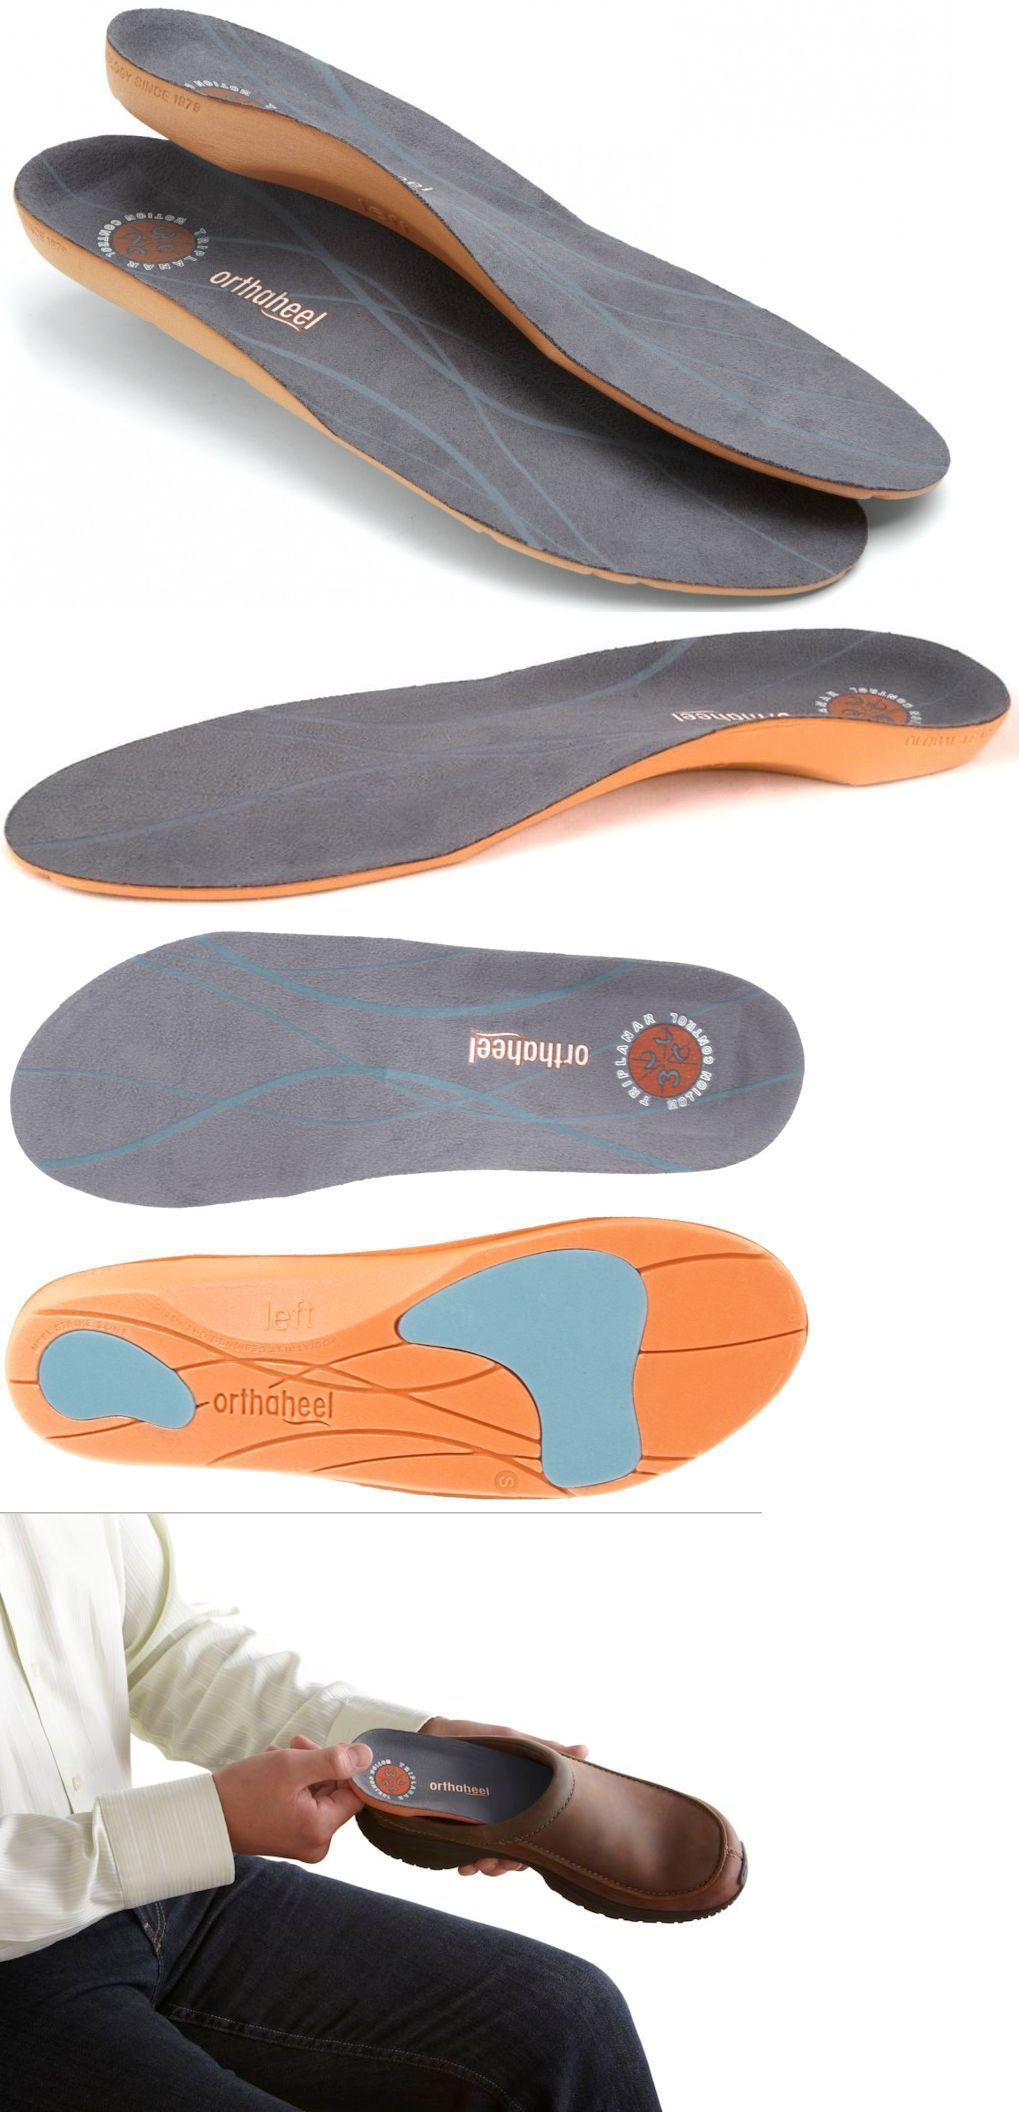 9e0a0bbbb2 Insoles 169284: Vionic Orthaheel Relief Orthotic Unisex Full Length Shoe Inserts  Insoles Xs-Xl